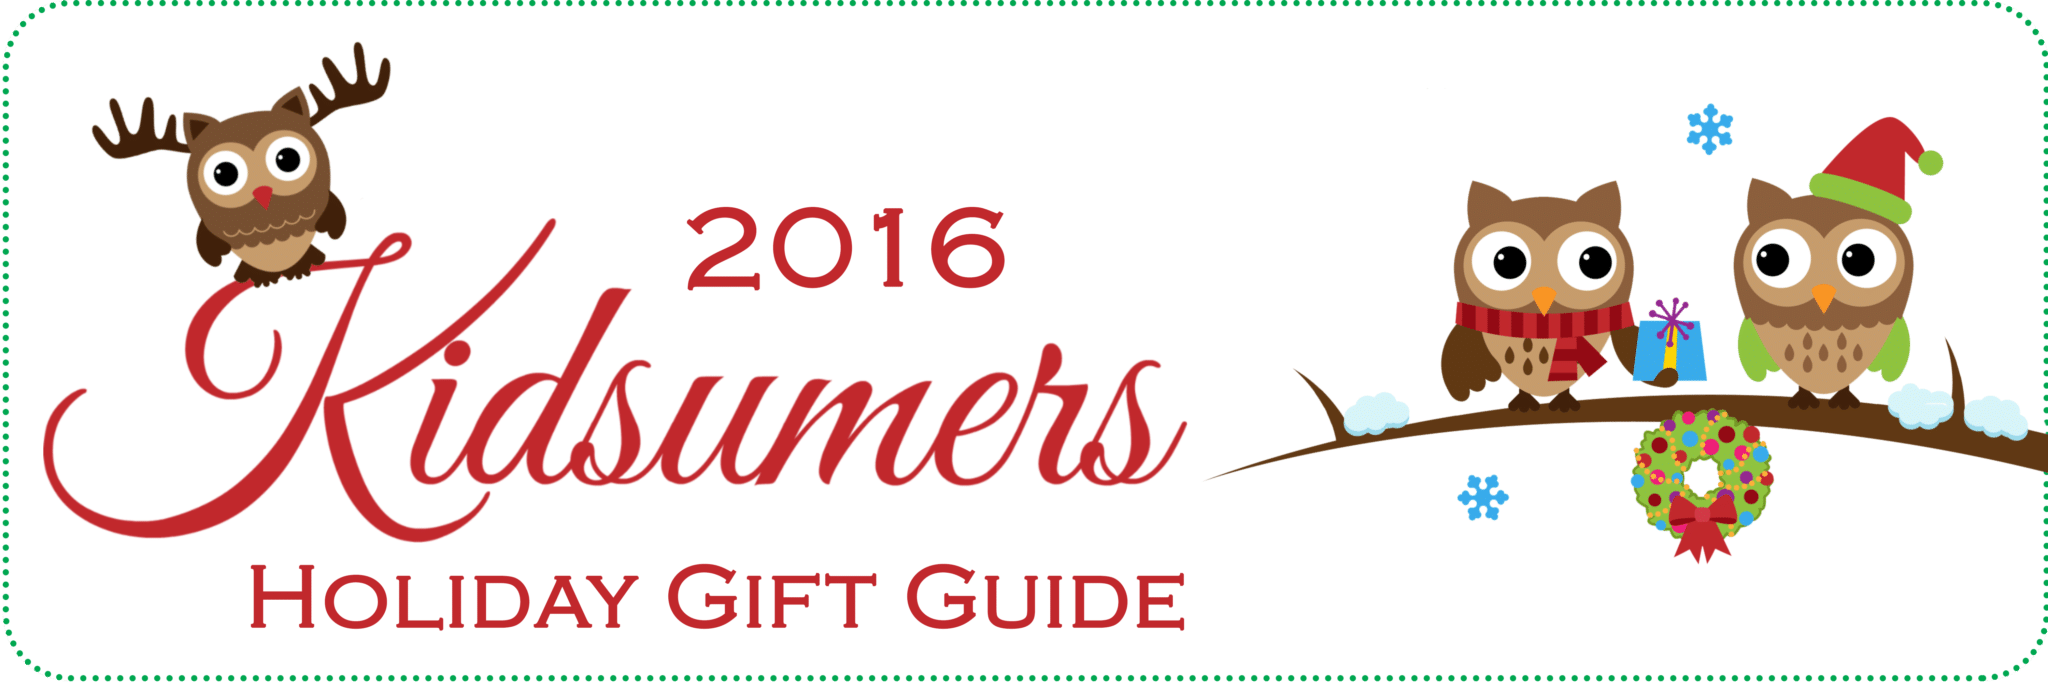 Kidsumers Holiday Gift Guide